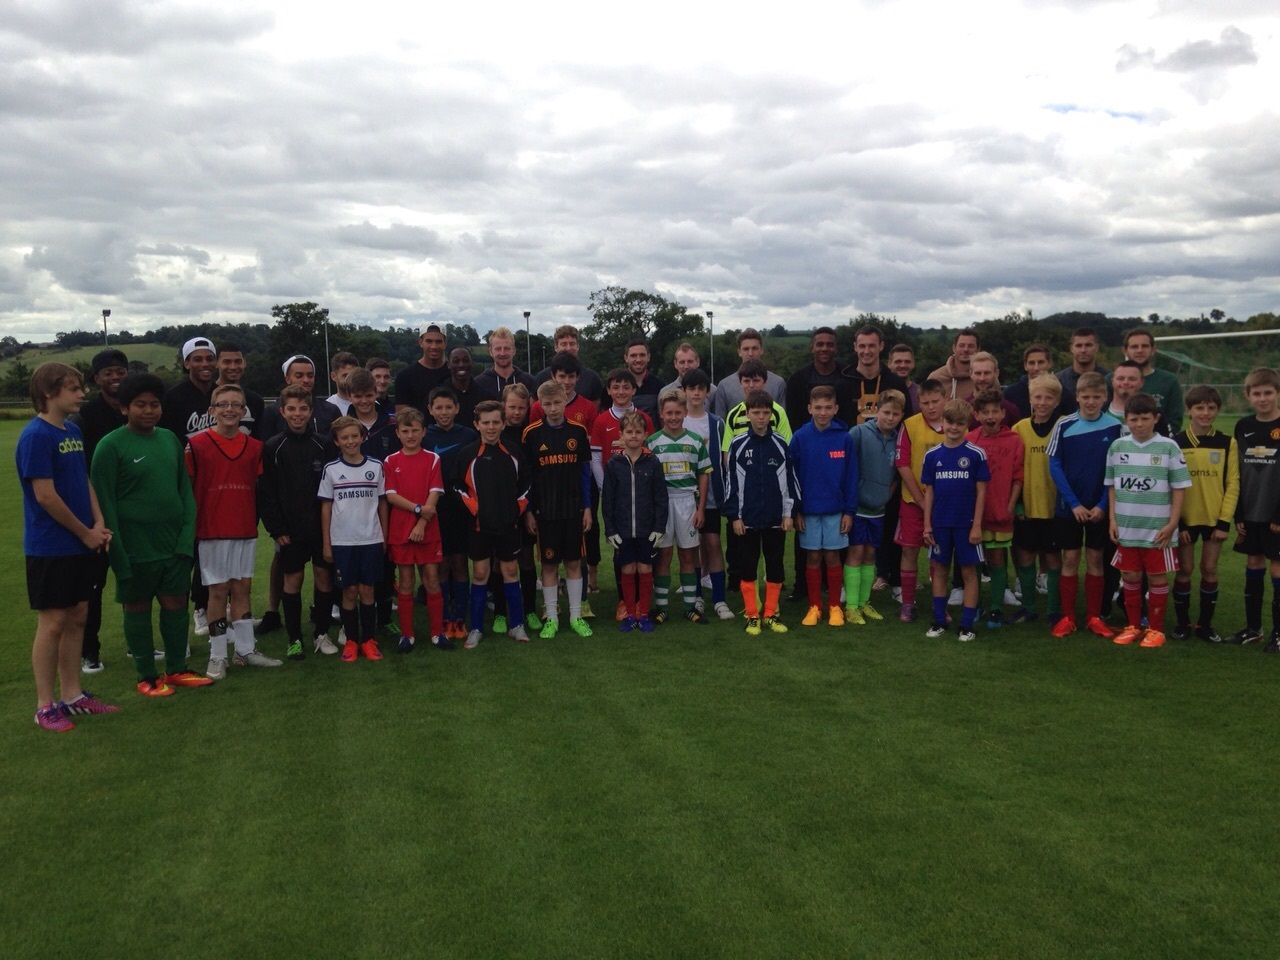 SUMMER SOCCER SCHOOLS A SUPER SUCCESS